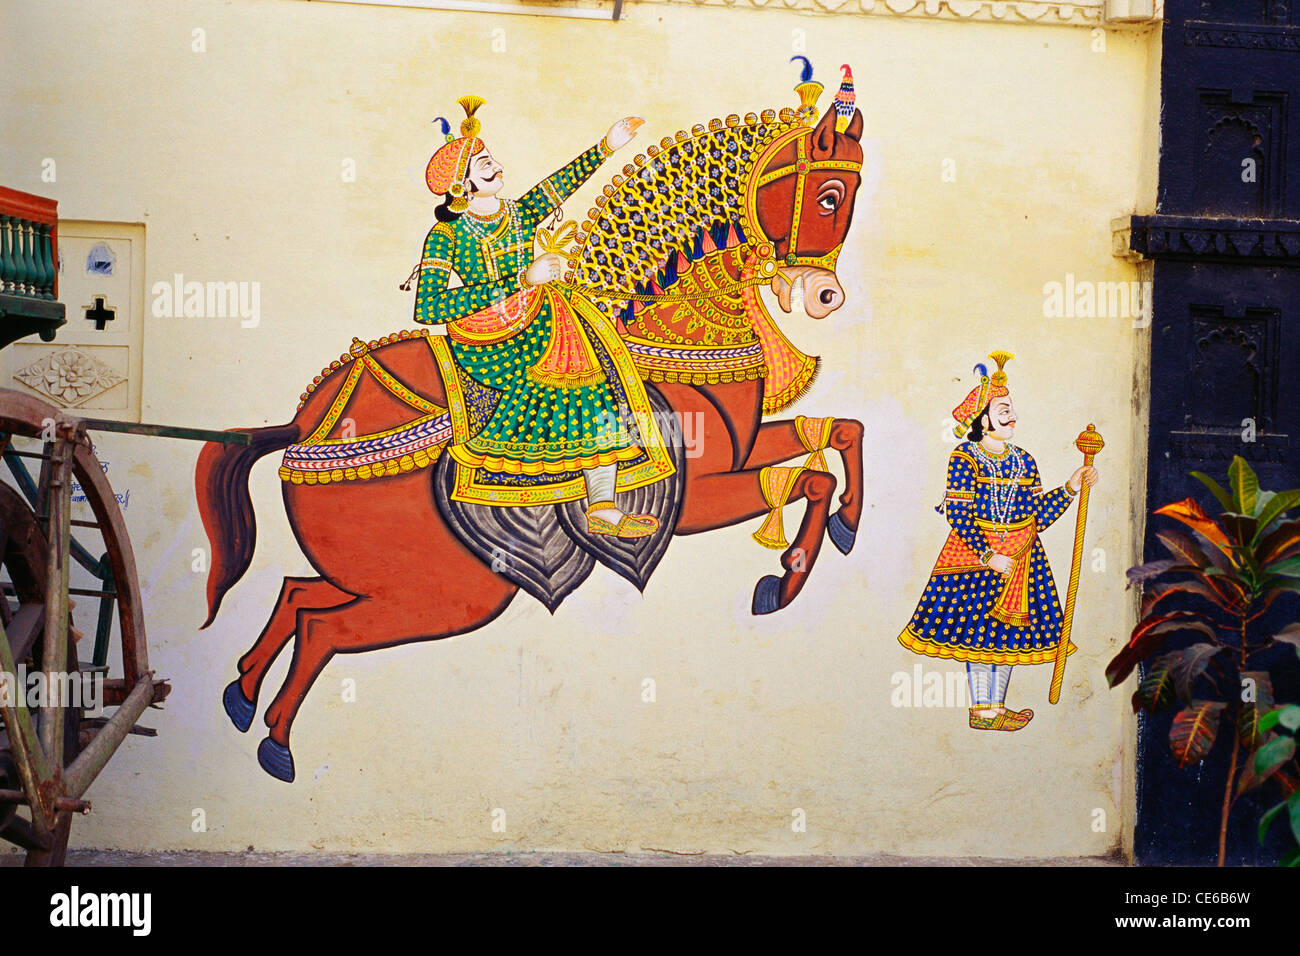 Wall Painting Rajput Man On Horse In Bagore Ki Haveli Museum Stock